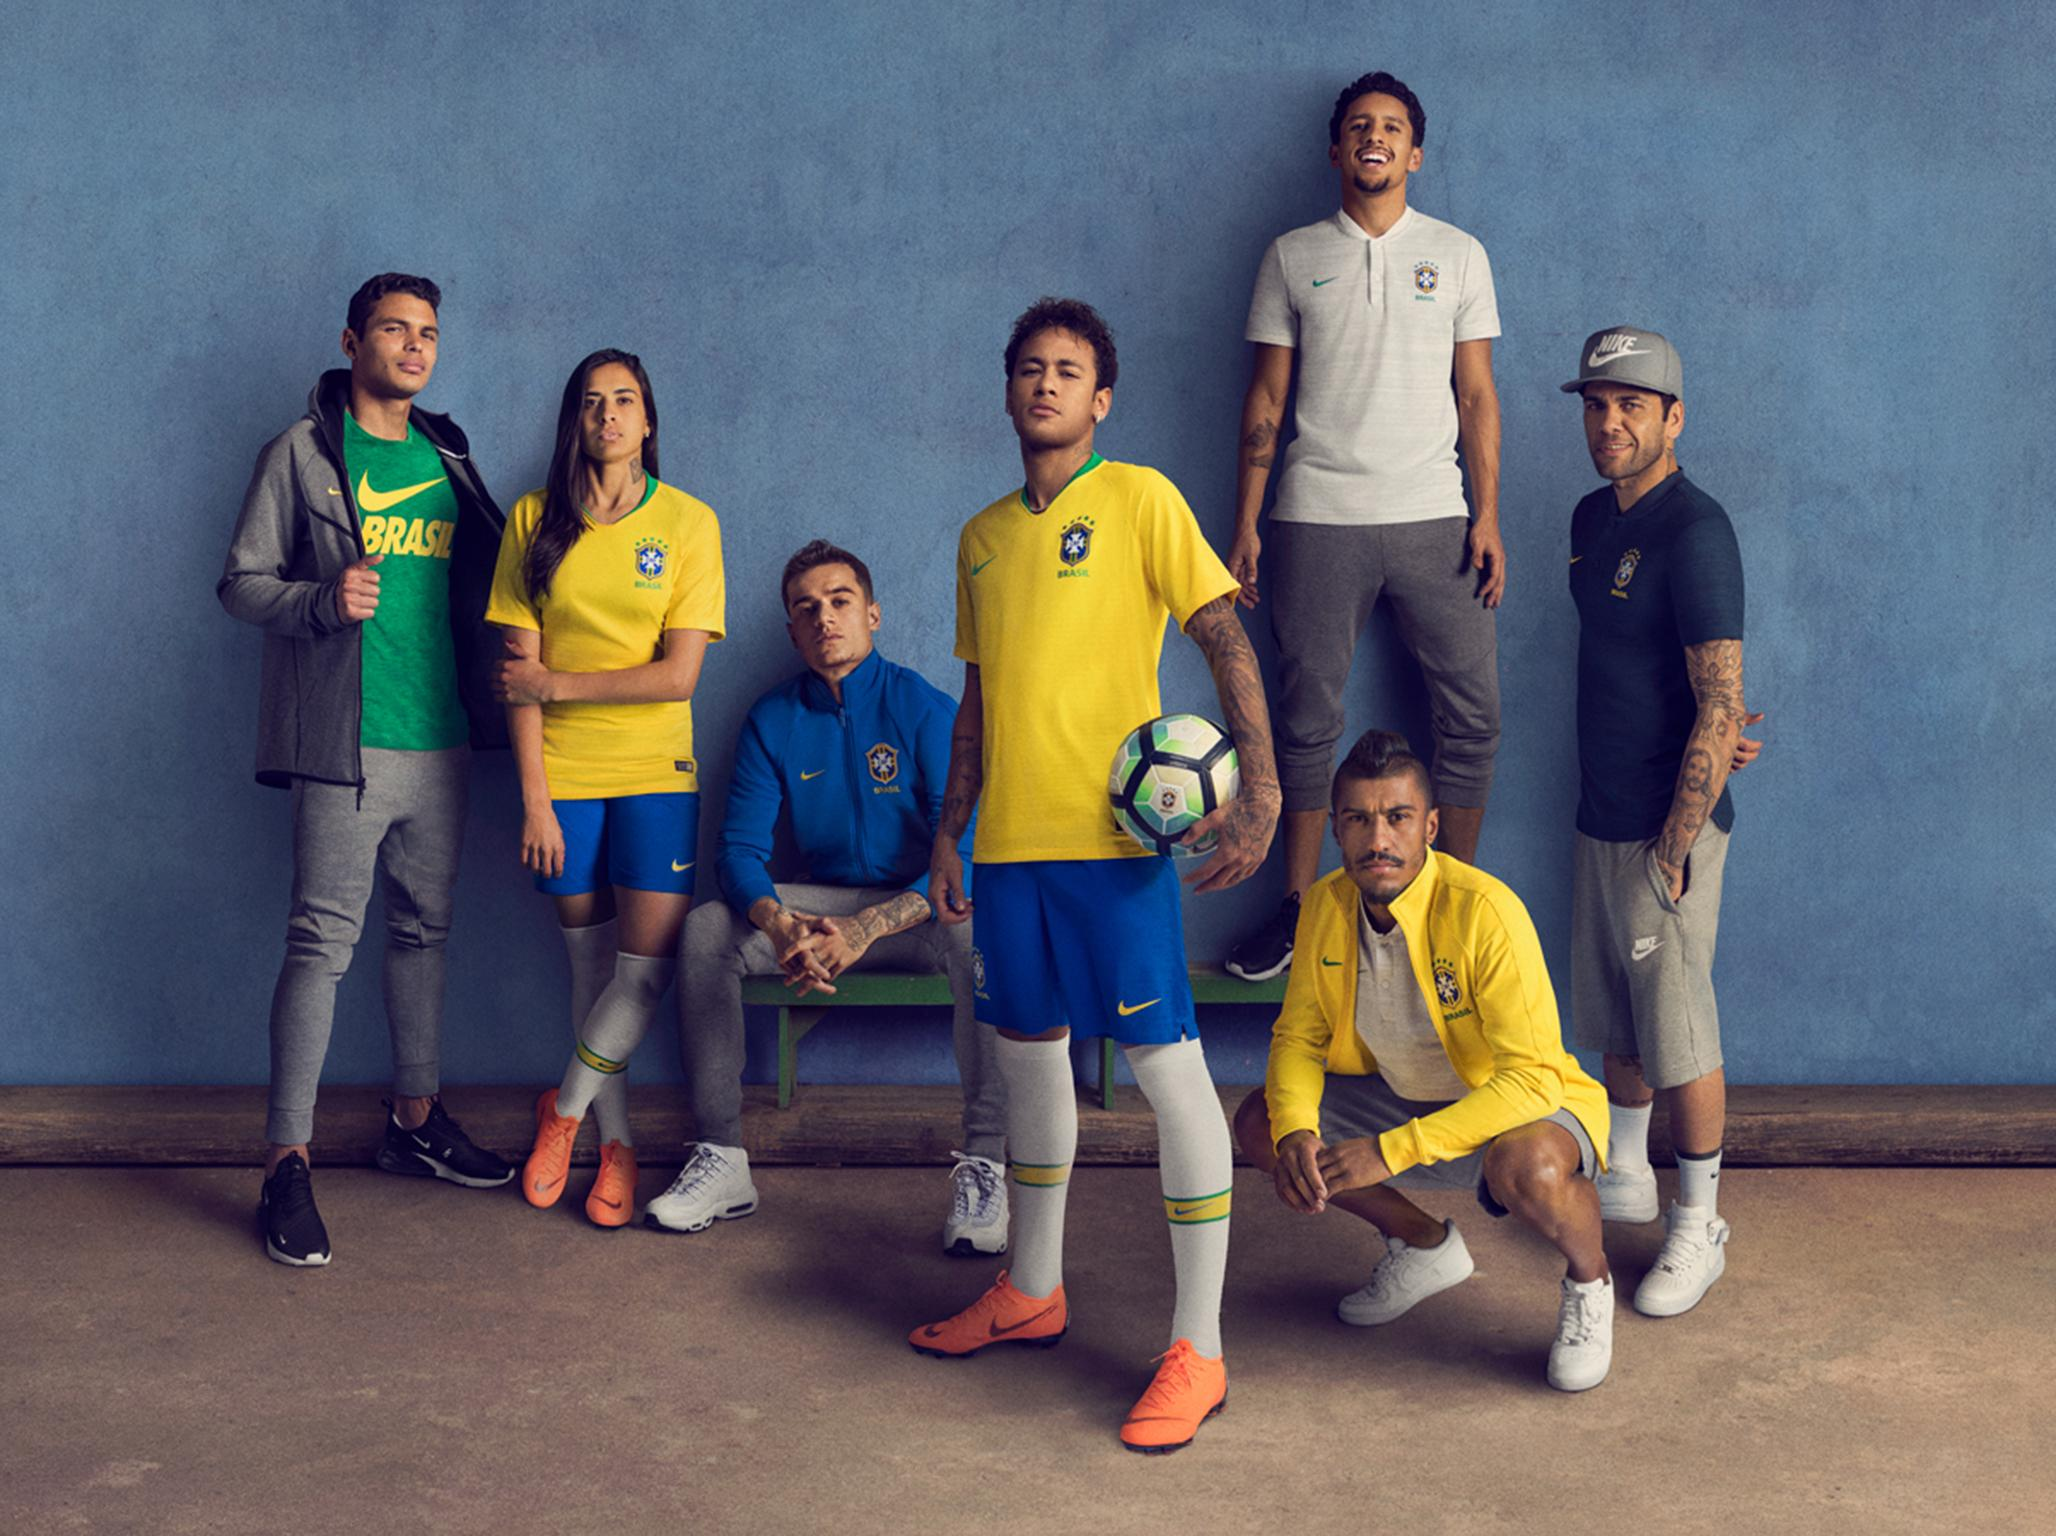 World Cup 2018 kits: Every home and away shirt rated - and your